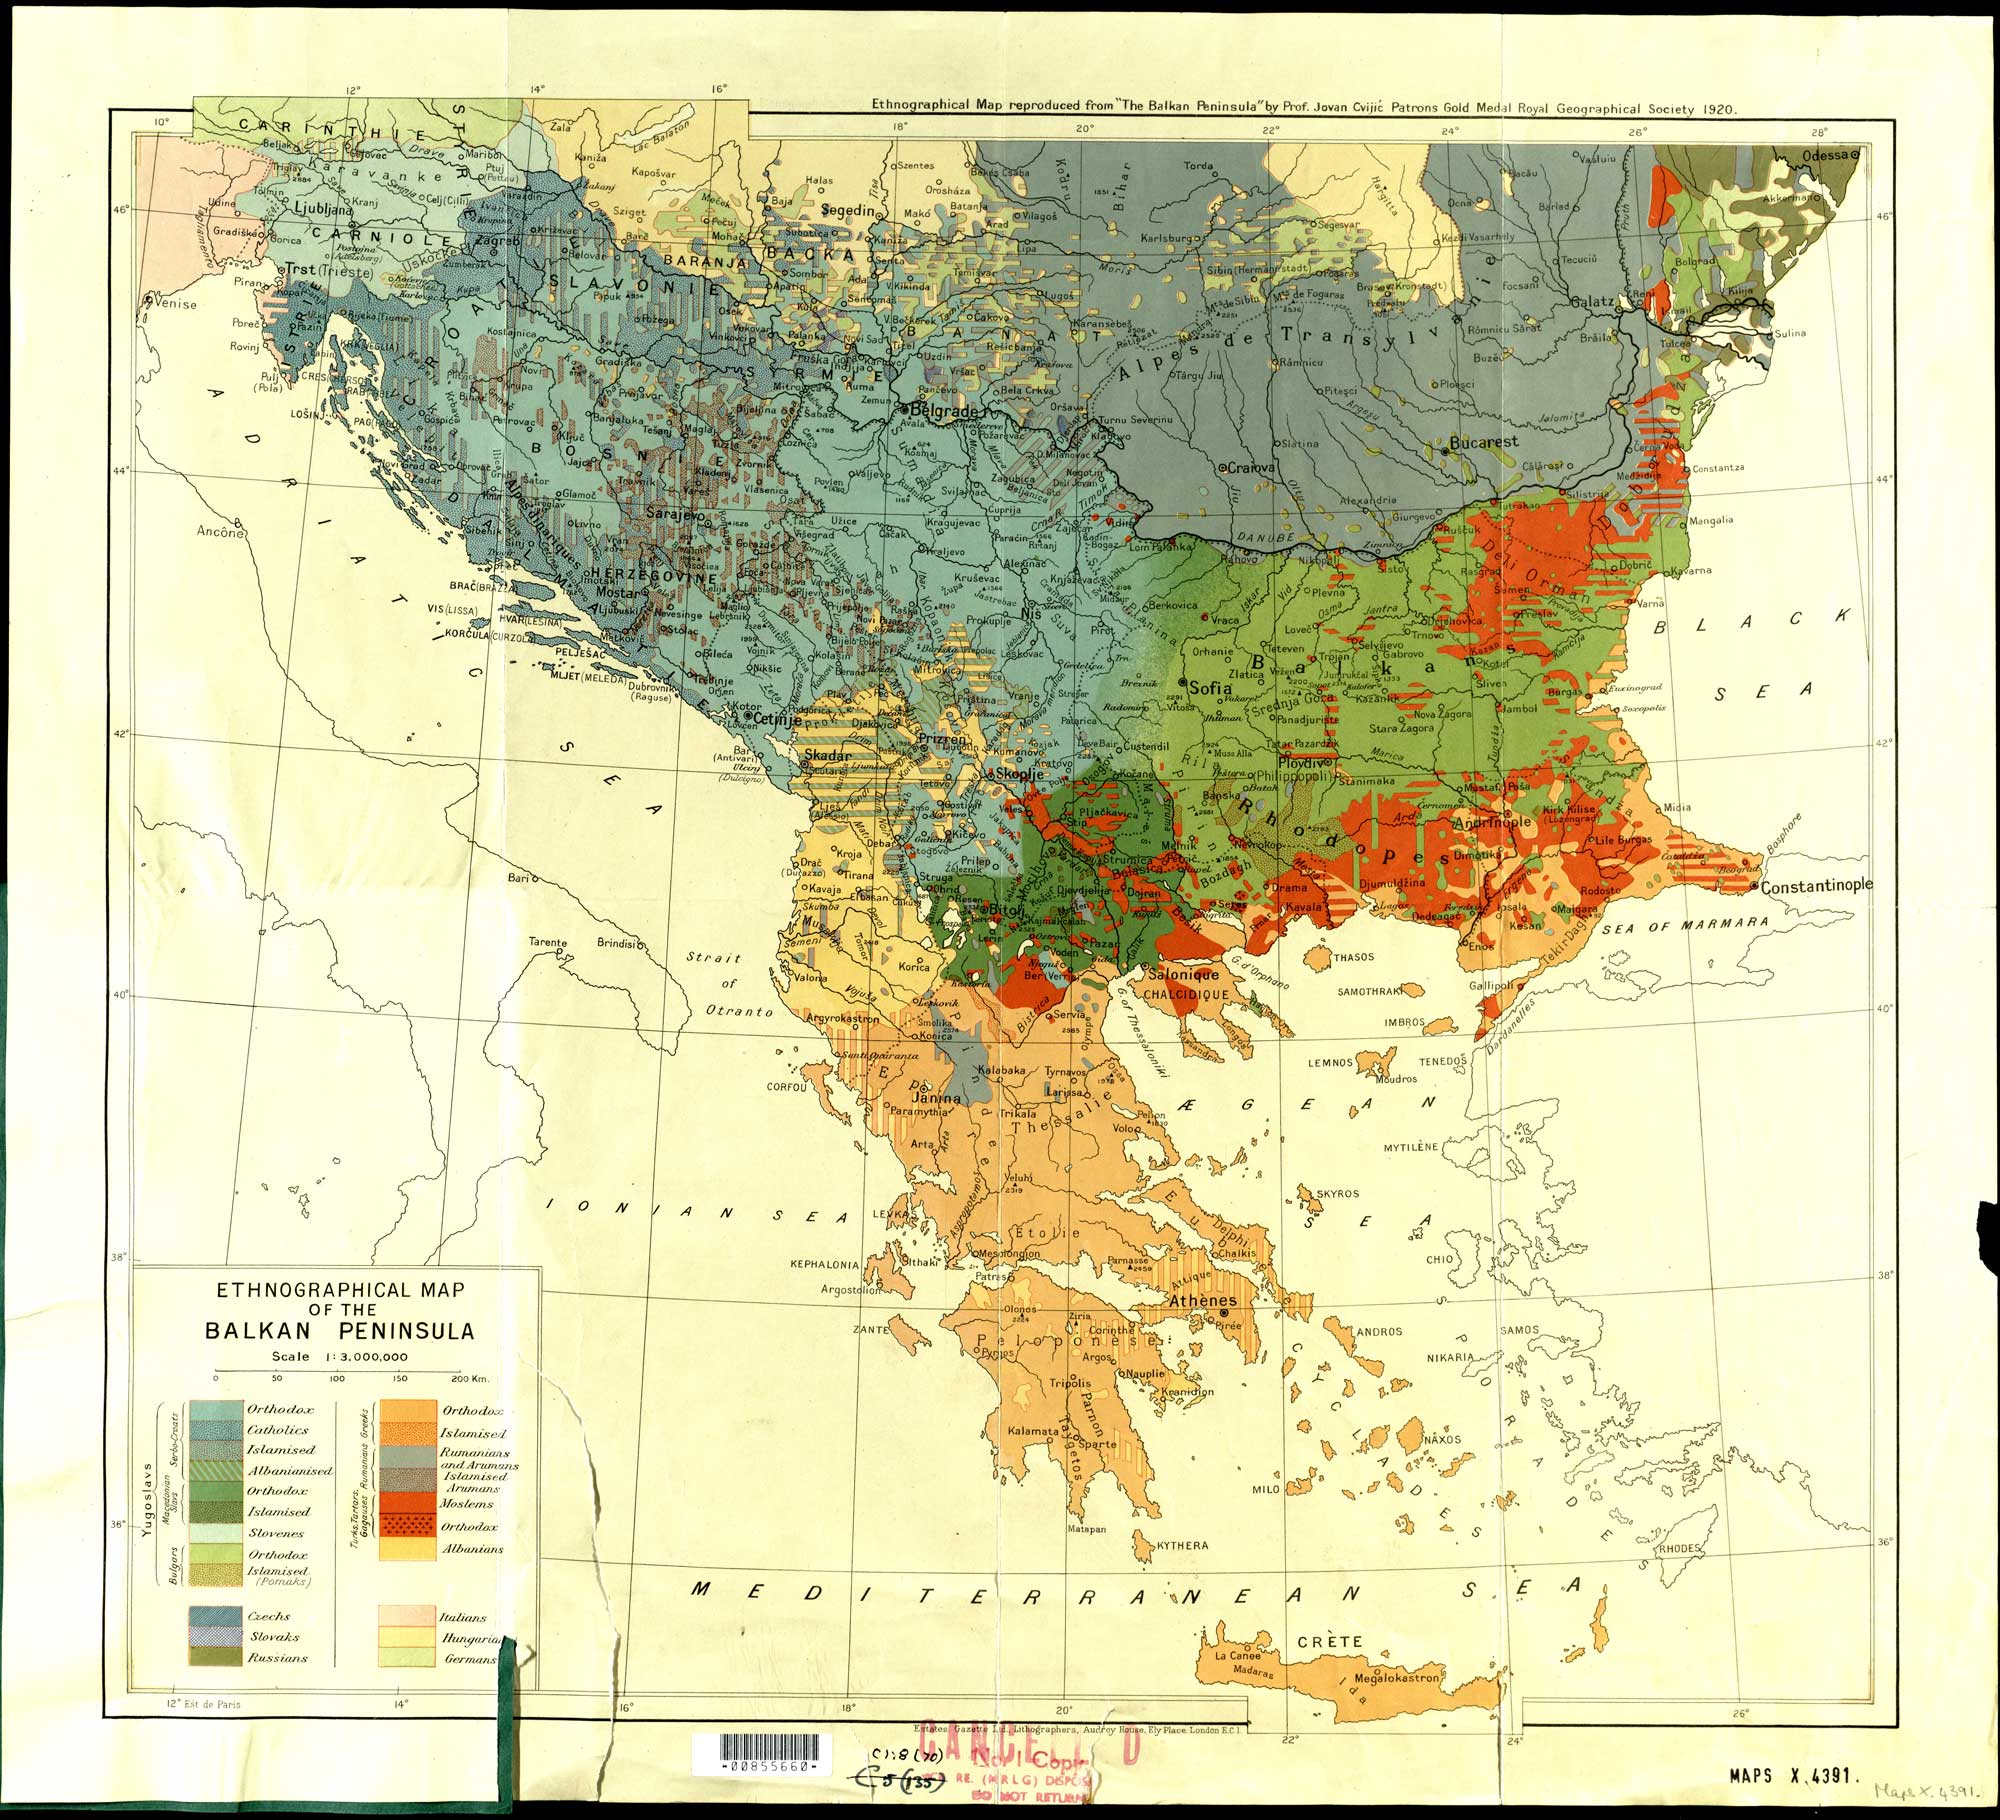 Ethnographical map of the Balkans showing religious and ethnic ...